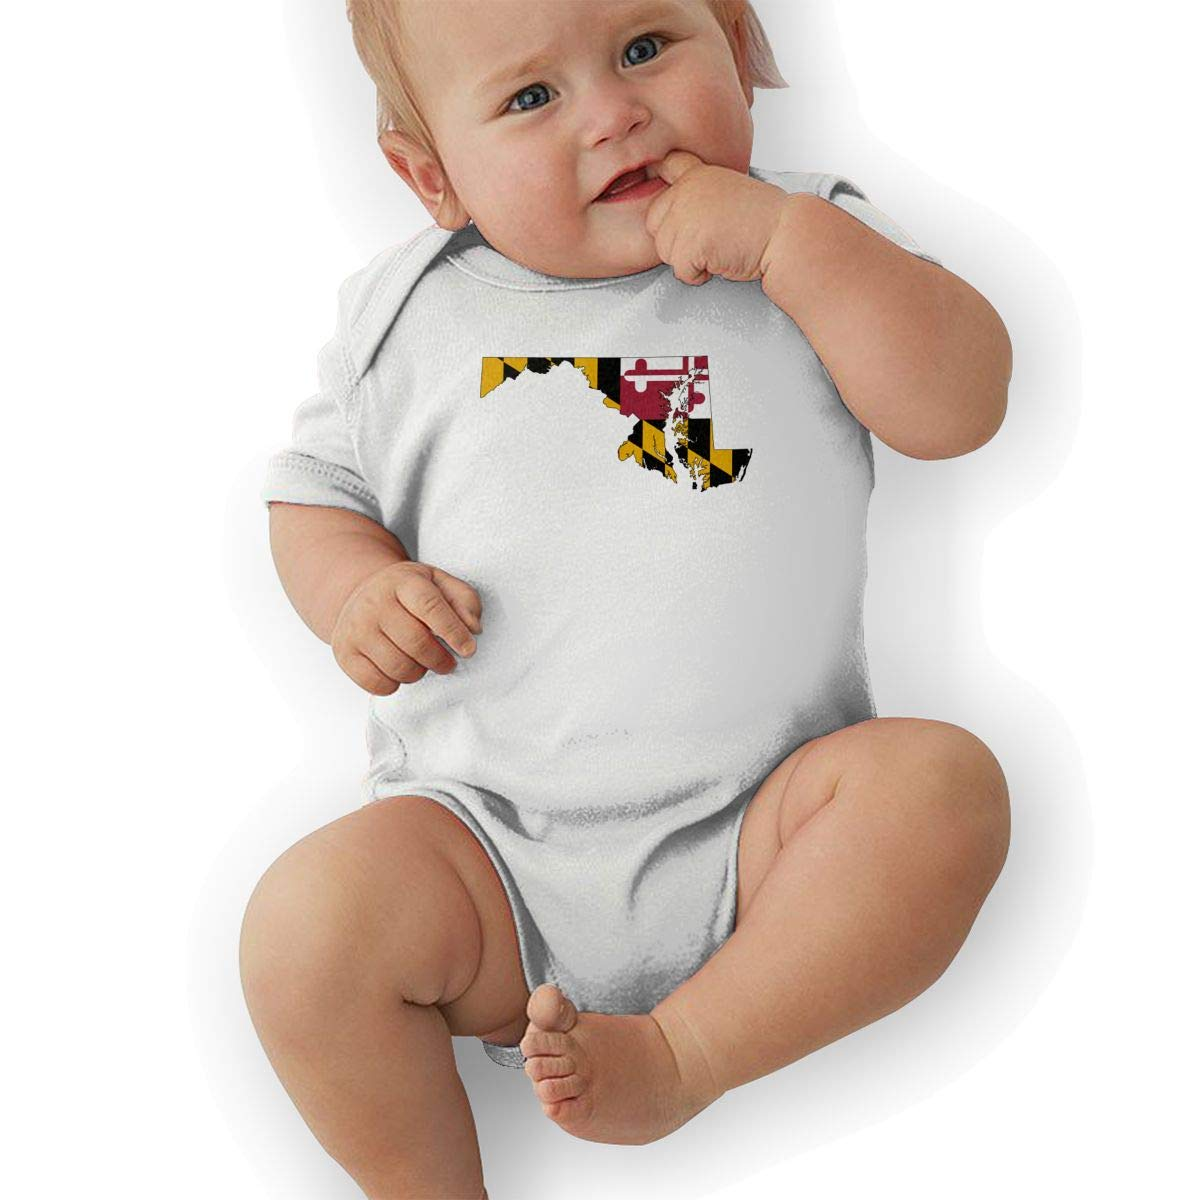 Newborn Baby Boys Bodysuit Short-Sleeve Onesie Maryland State Flag Print Outfit Summer Pajamas